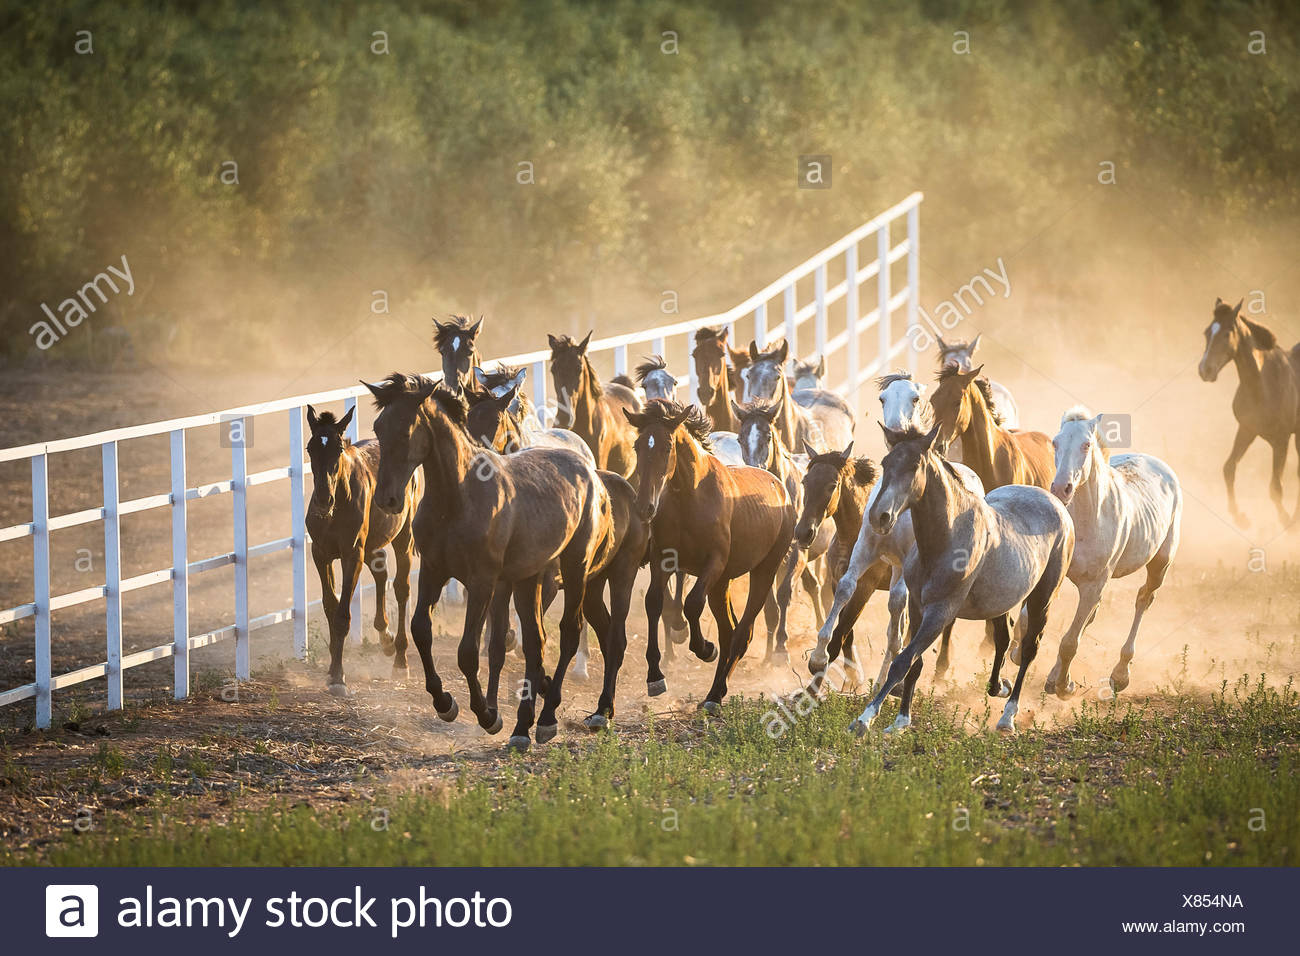 Pure Spanish Horse, Andalusian. Herd of juvenile stallions galloping on dry ground. Spain - Stock Image